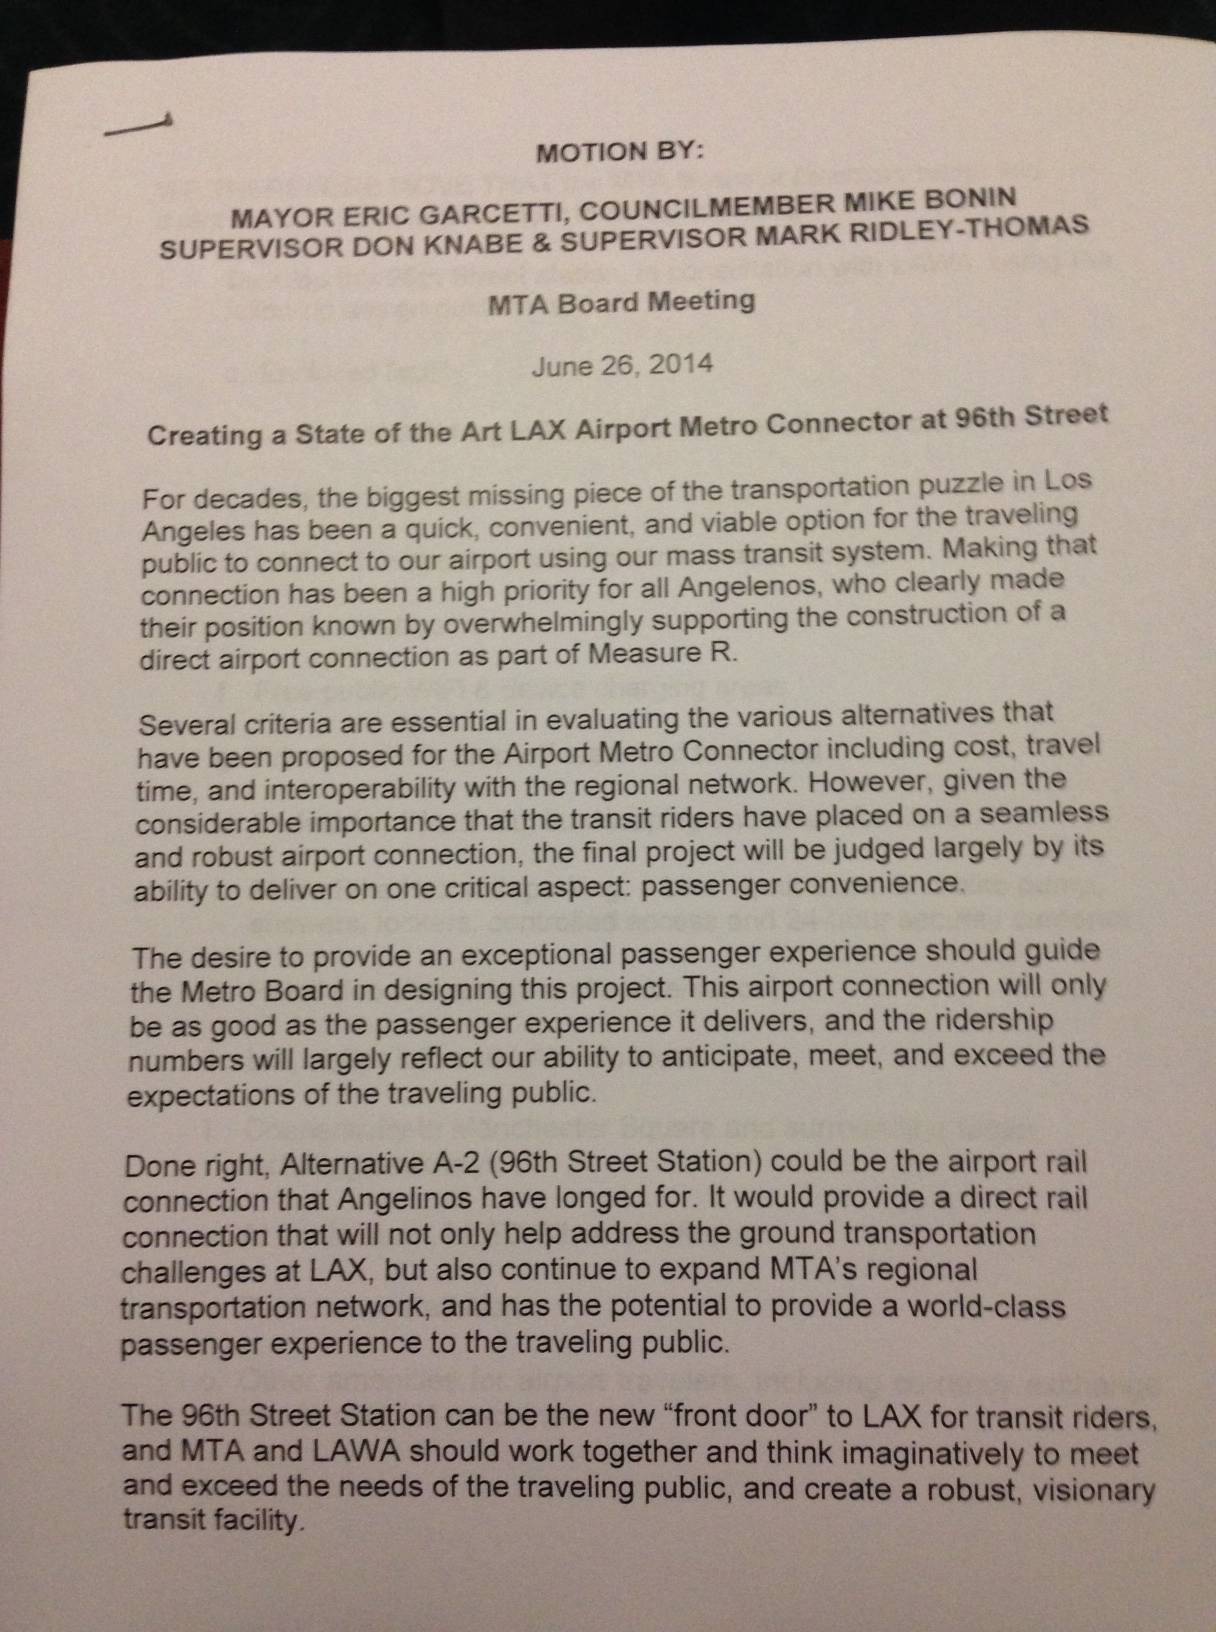 Metro Board approves new station at Aviation/96th as best option to